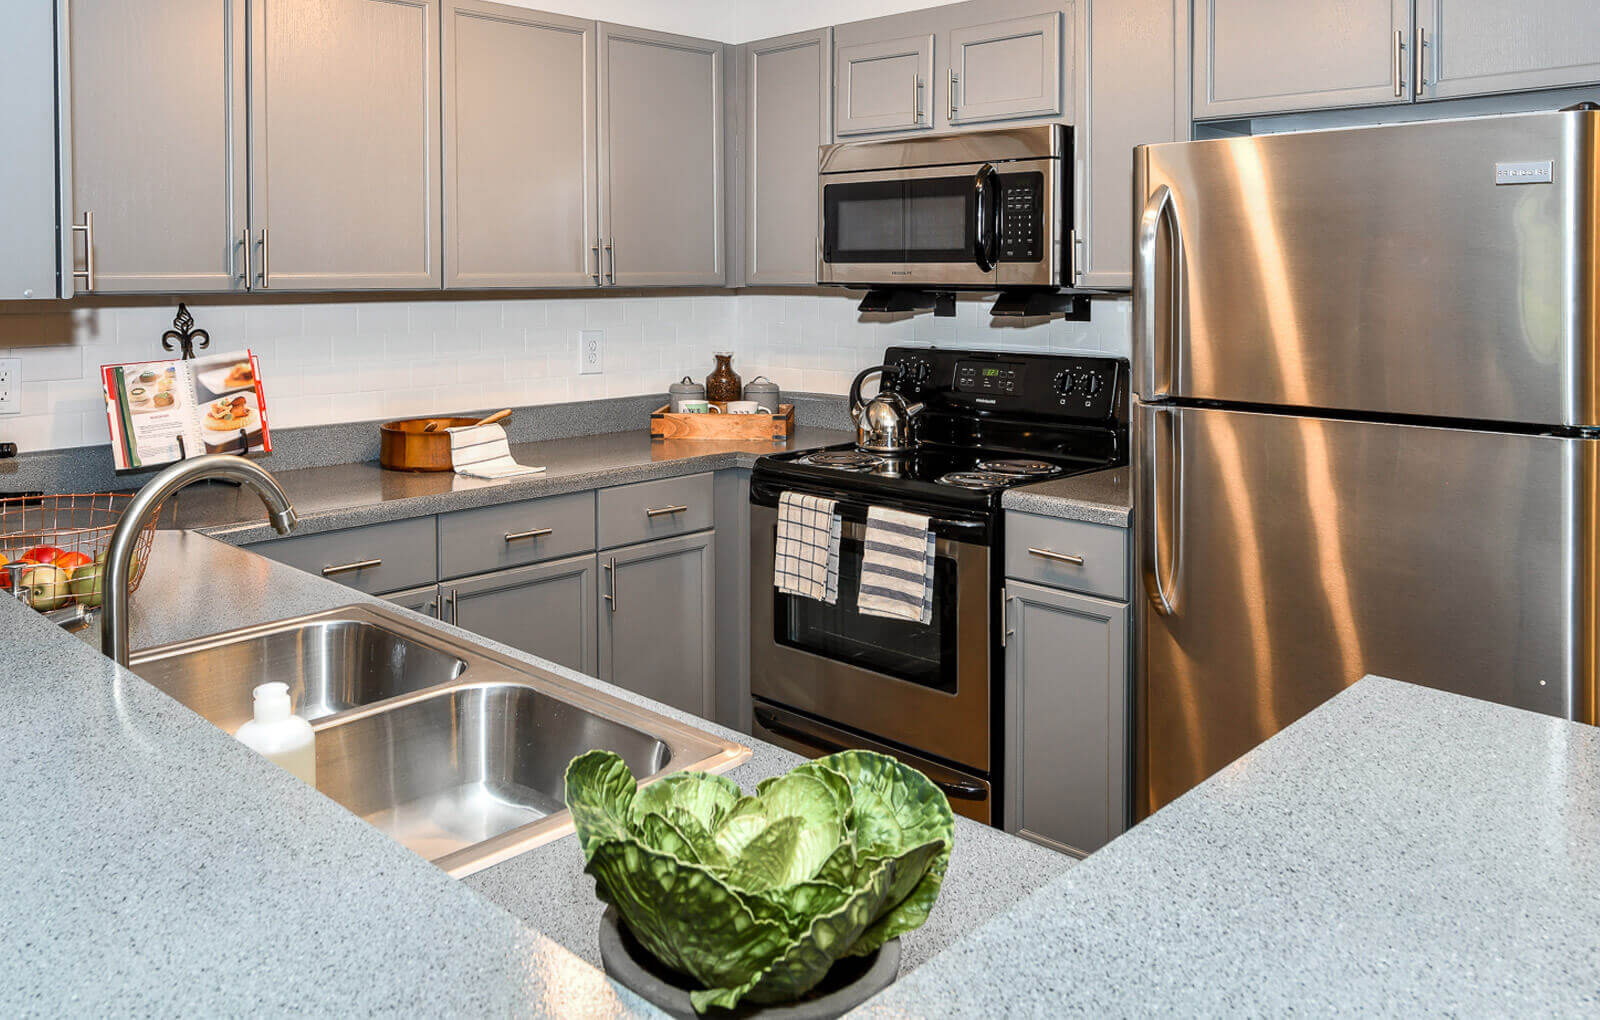 Efficient Appliances In Kitchen, at Crestmark Apartment Homes, Georgia